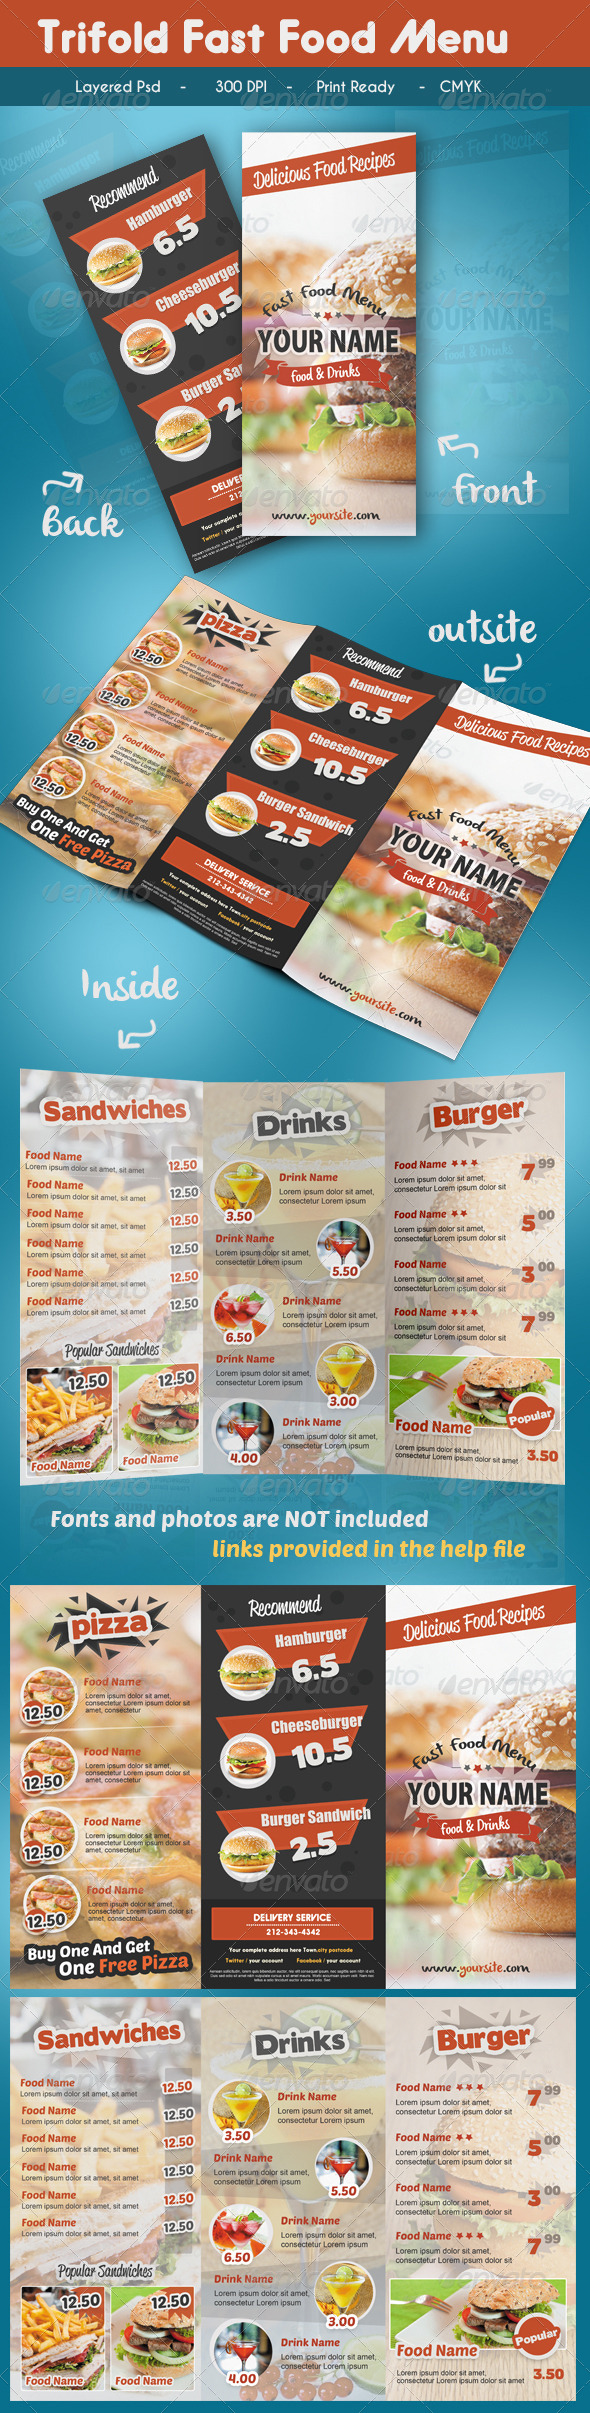 GraphicRiver Trifold Fast Food Menu 7341758